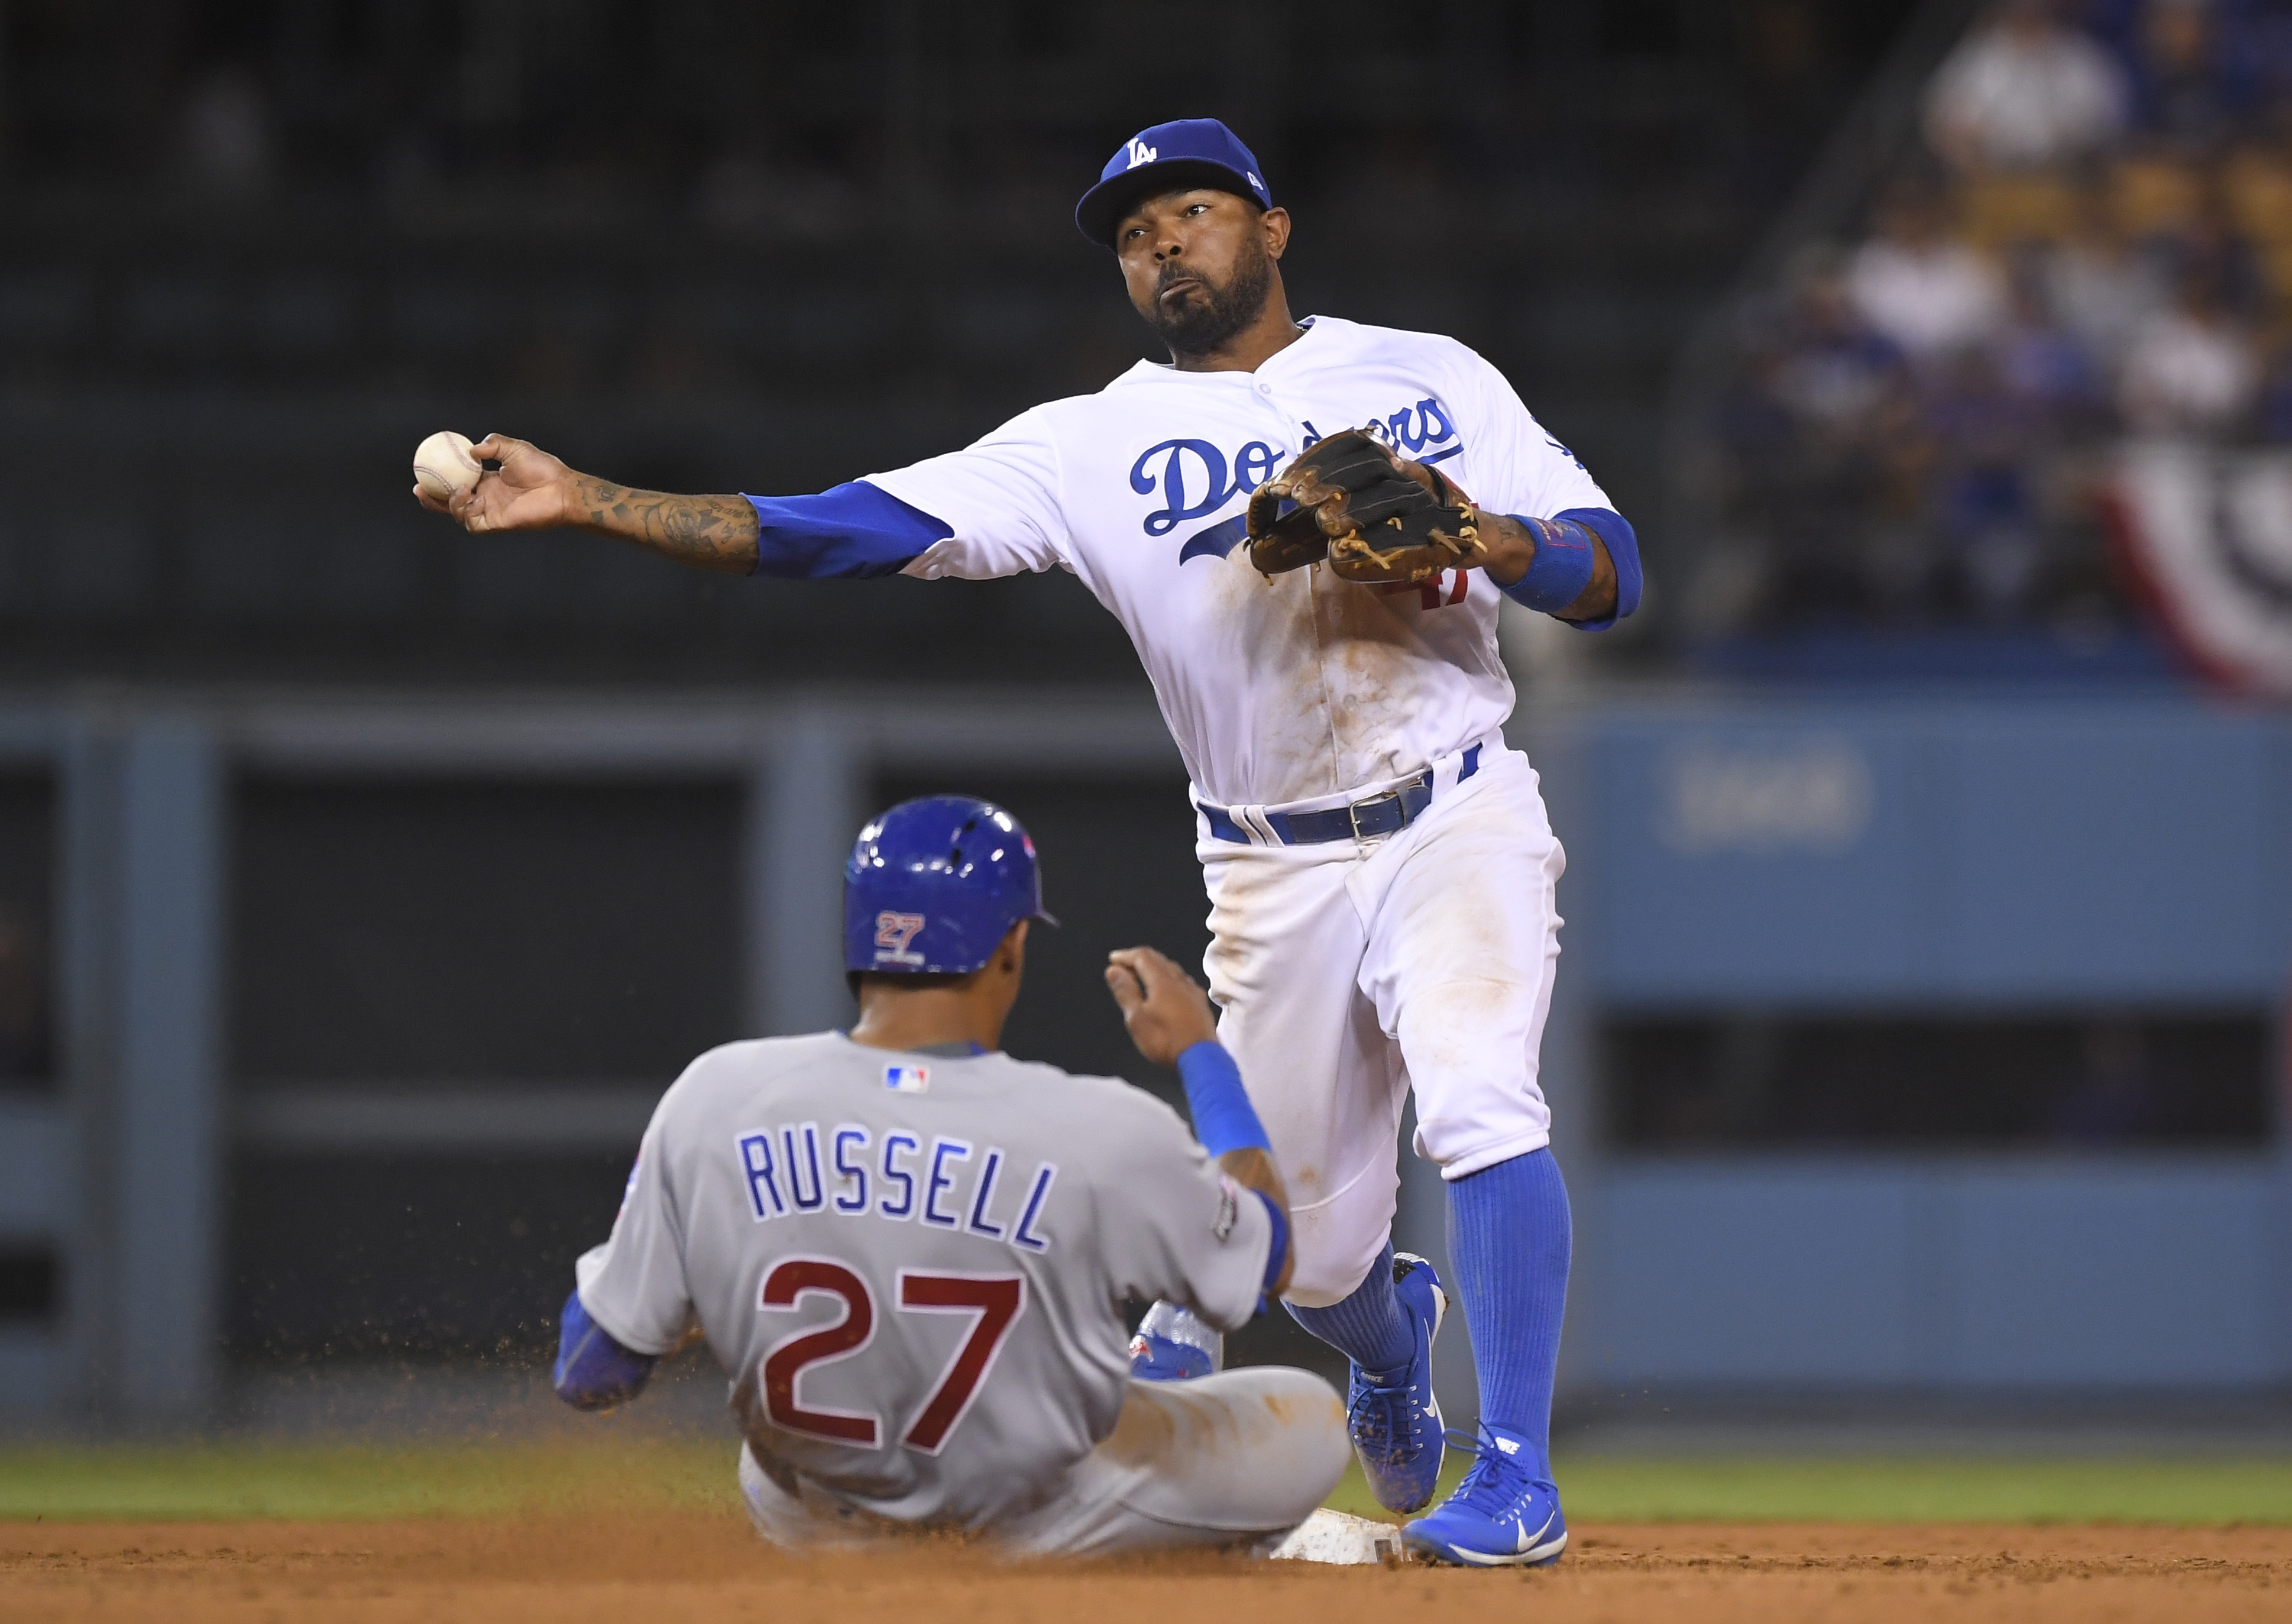 Chicago Cubs' Addison Russell is out at second as Los Angeles Dodgers' Howie Kendrick turns a double play on a ball hit by Albert Almora Jr. during the ninth inning of Game 5 of the National League baseball championship series Thursday, Oct. 20, 2016, in